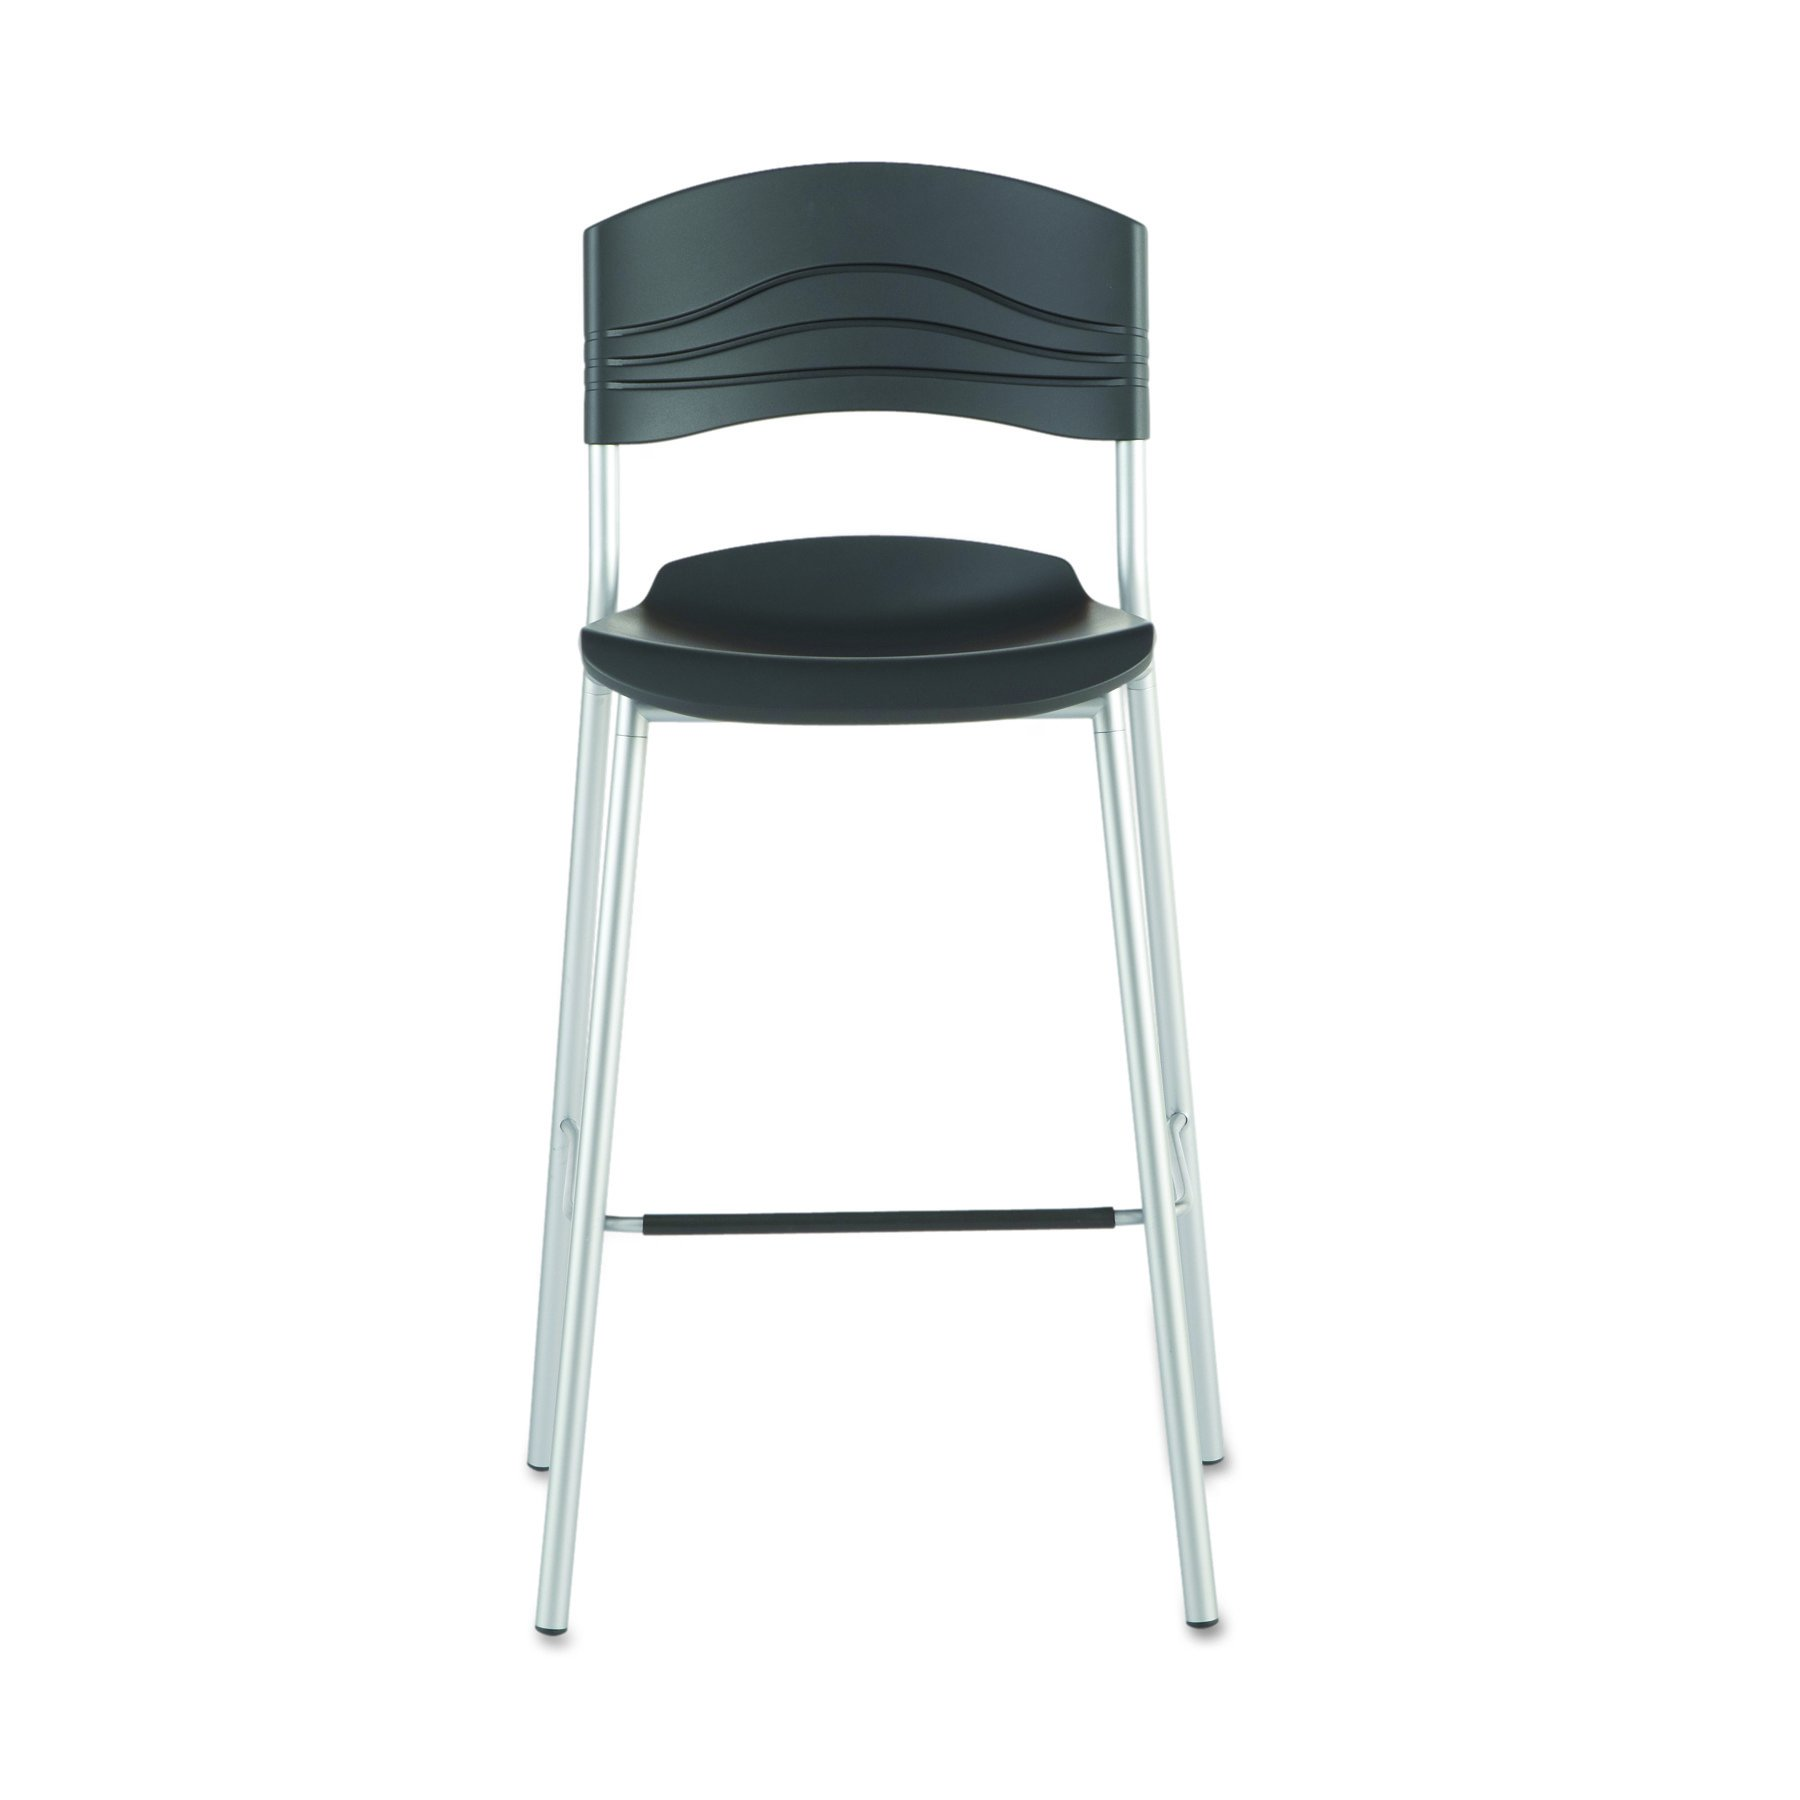 Iceberg ICE64527 CafeWorks Bistro Stool Chair with Heavy Gauge Steel Frame, 23'' Width x 44'' Height x 22'' Depth, Black